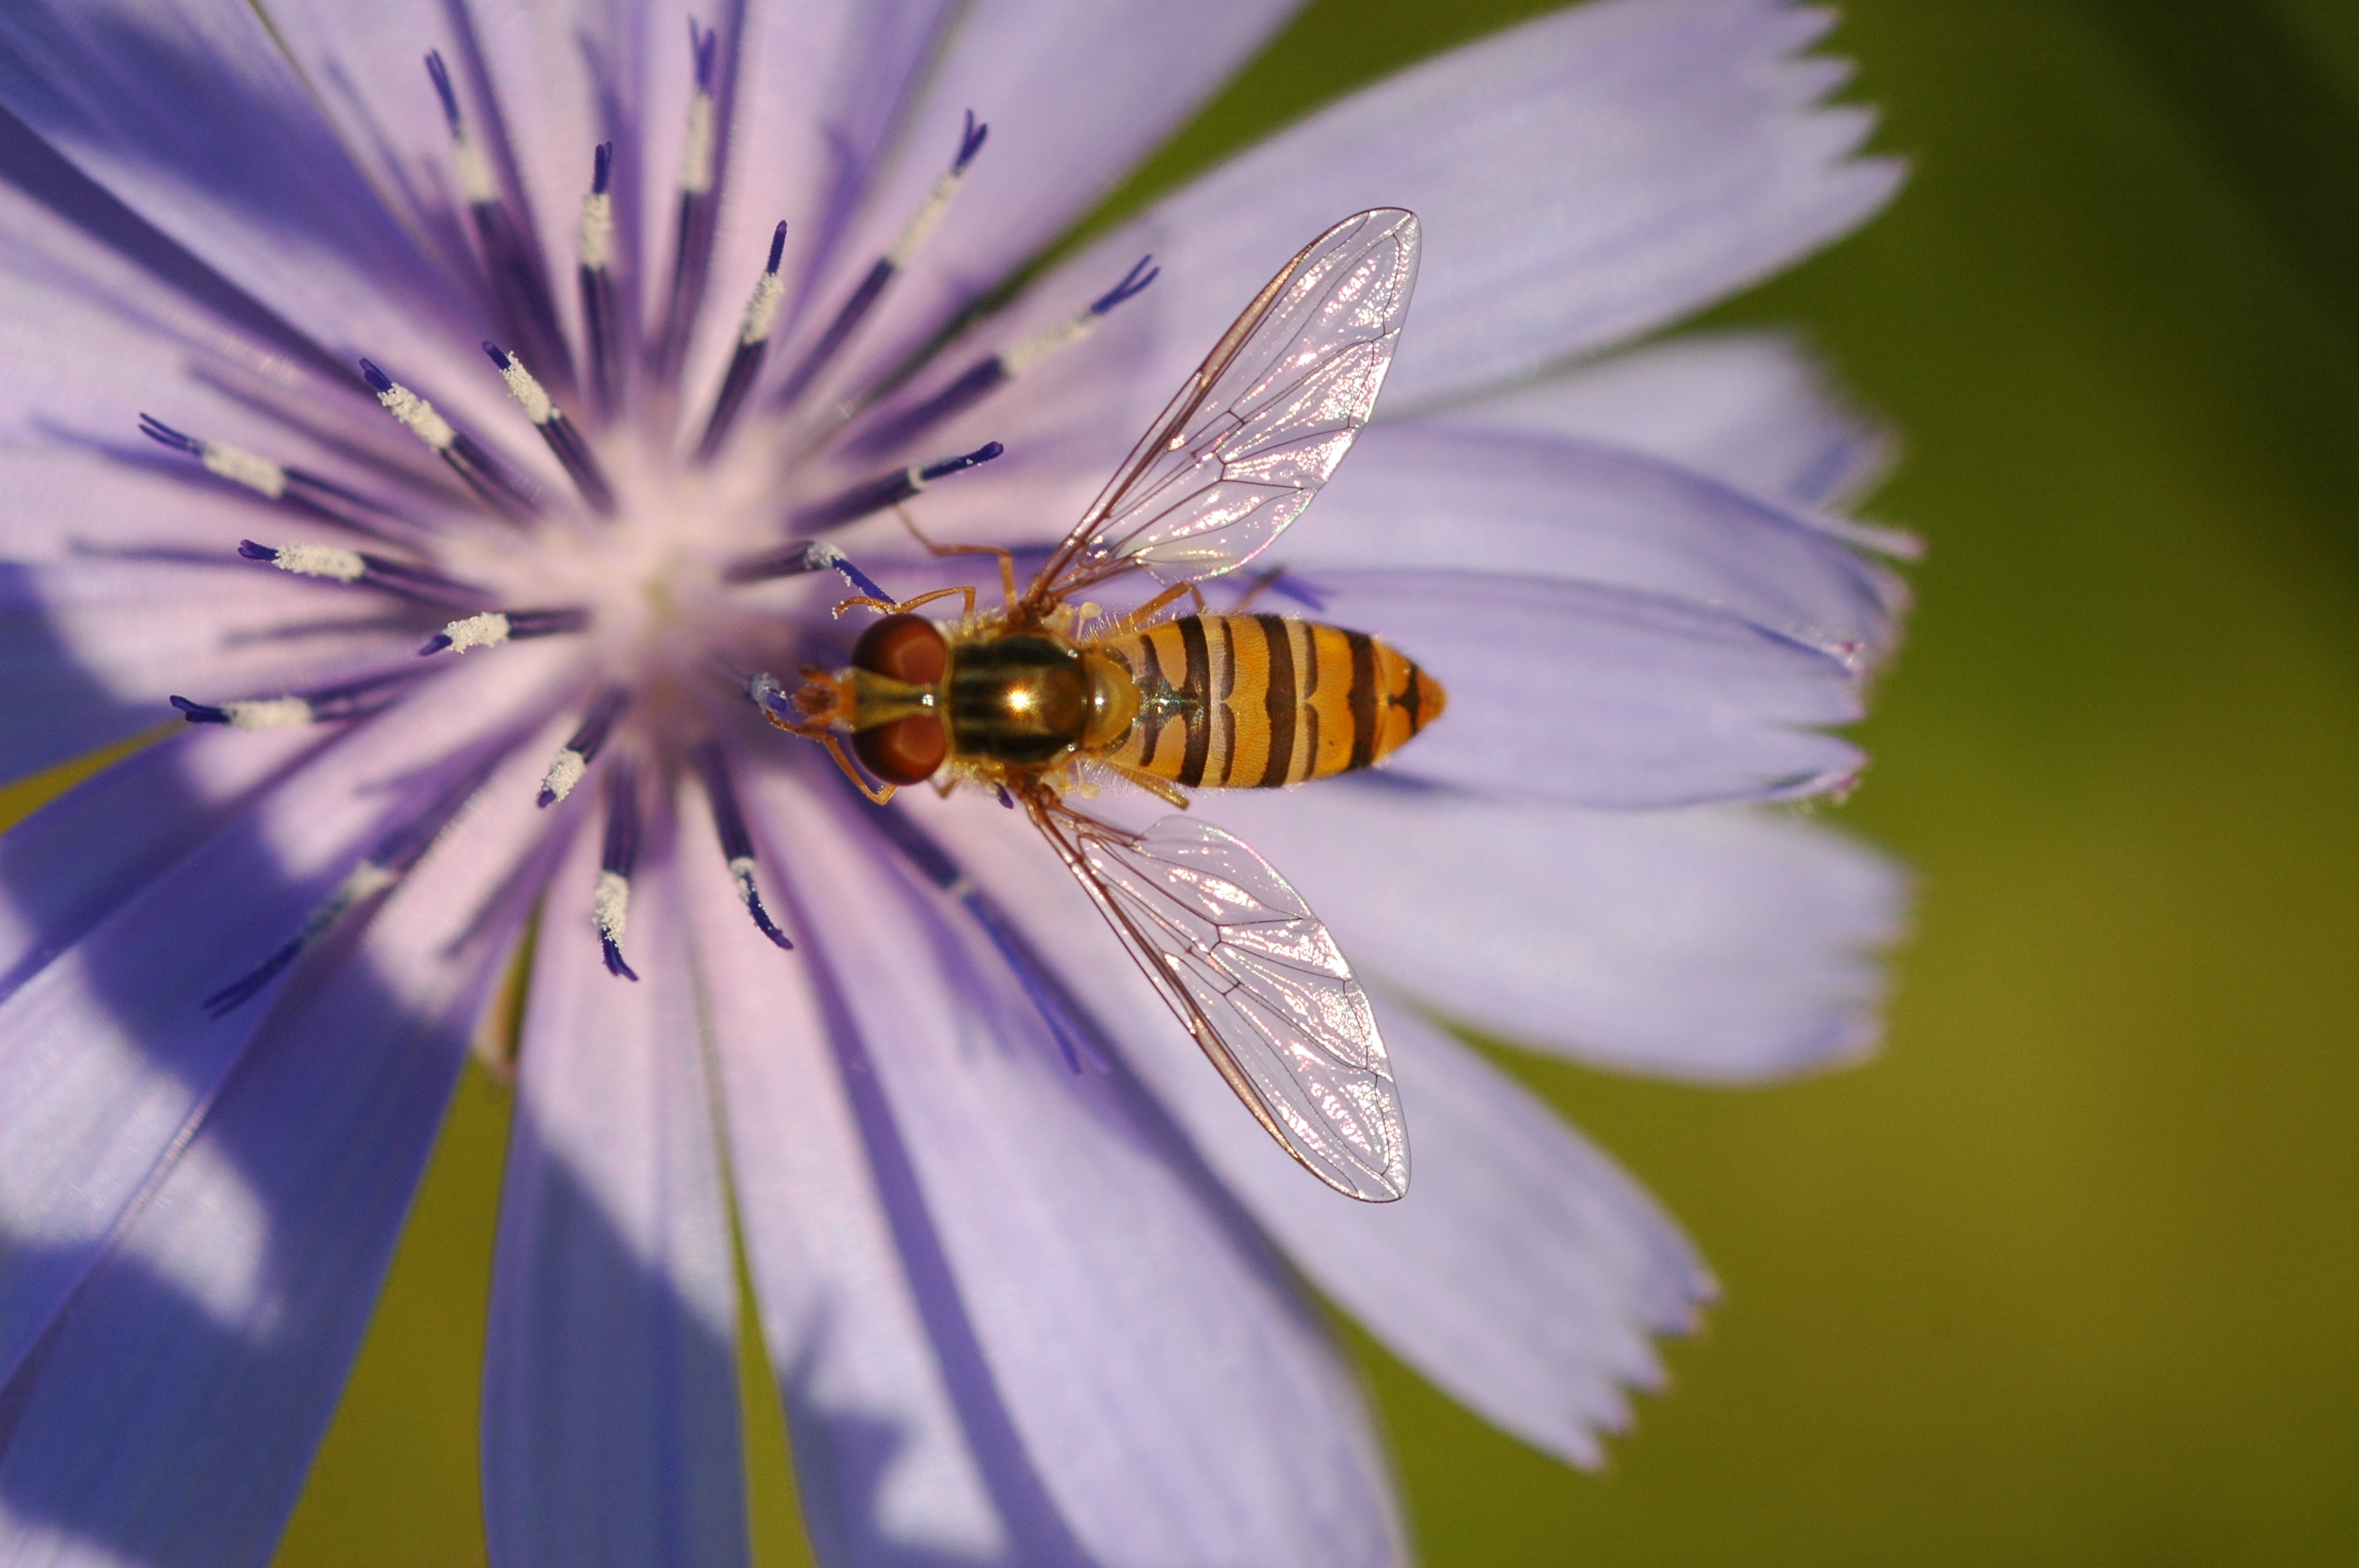 A striped insect pollinates a purple flower. Massive insect deaths in Germany suggest this vital ecosystem service could soon be lost.